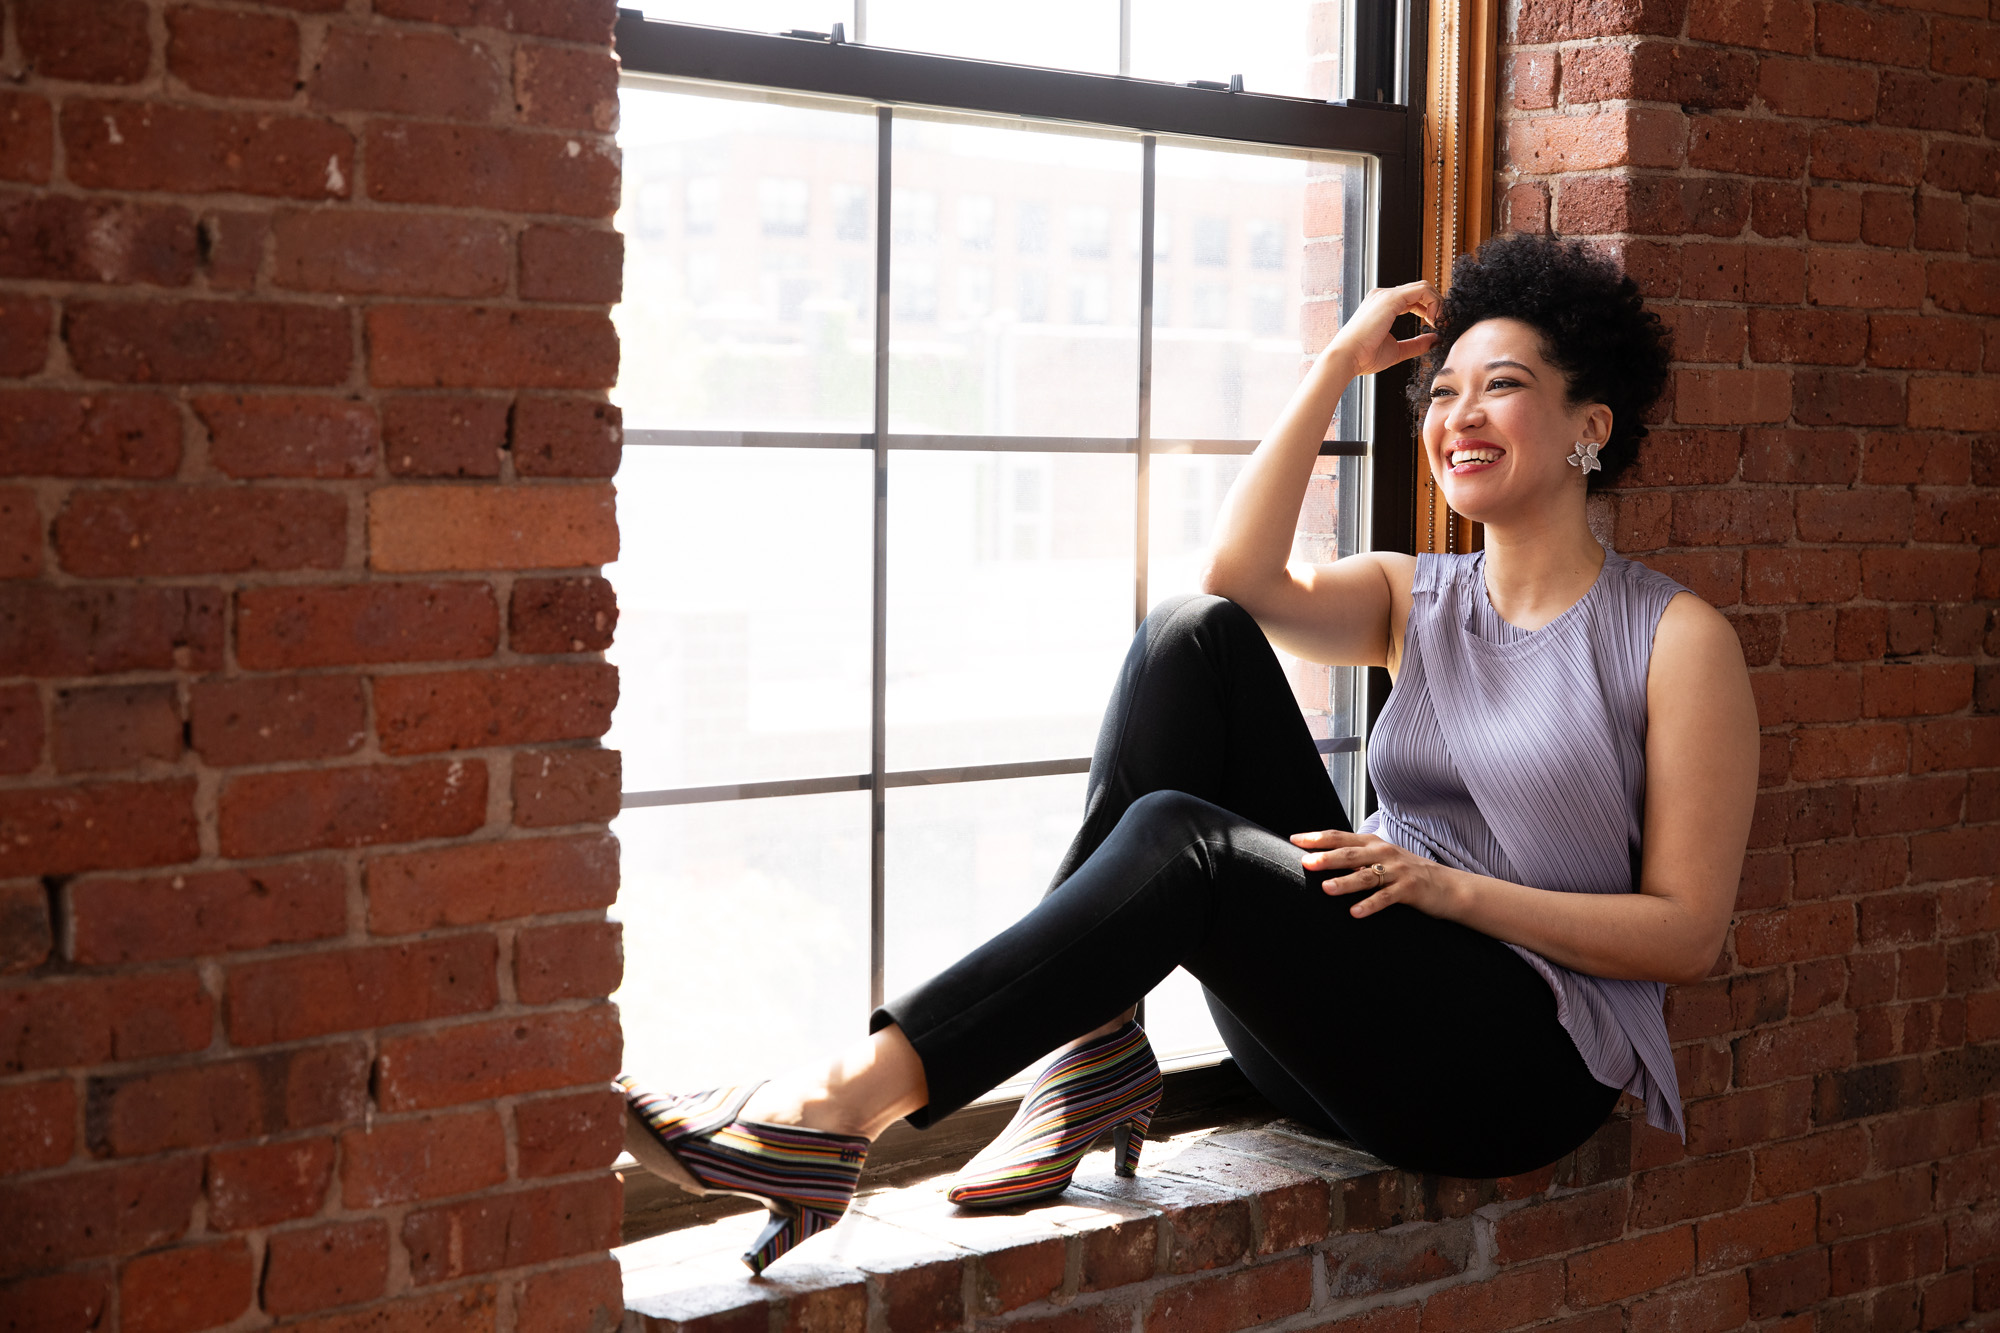 Julia Bullock sits on a red brick window ledge smiling and wearing a lavender sleeveless blouse, black tapered pants, and crystal and diamond earrings.